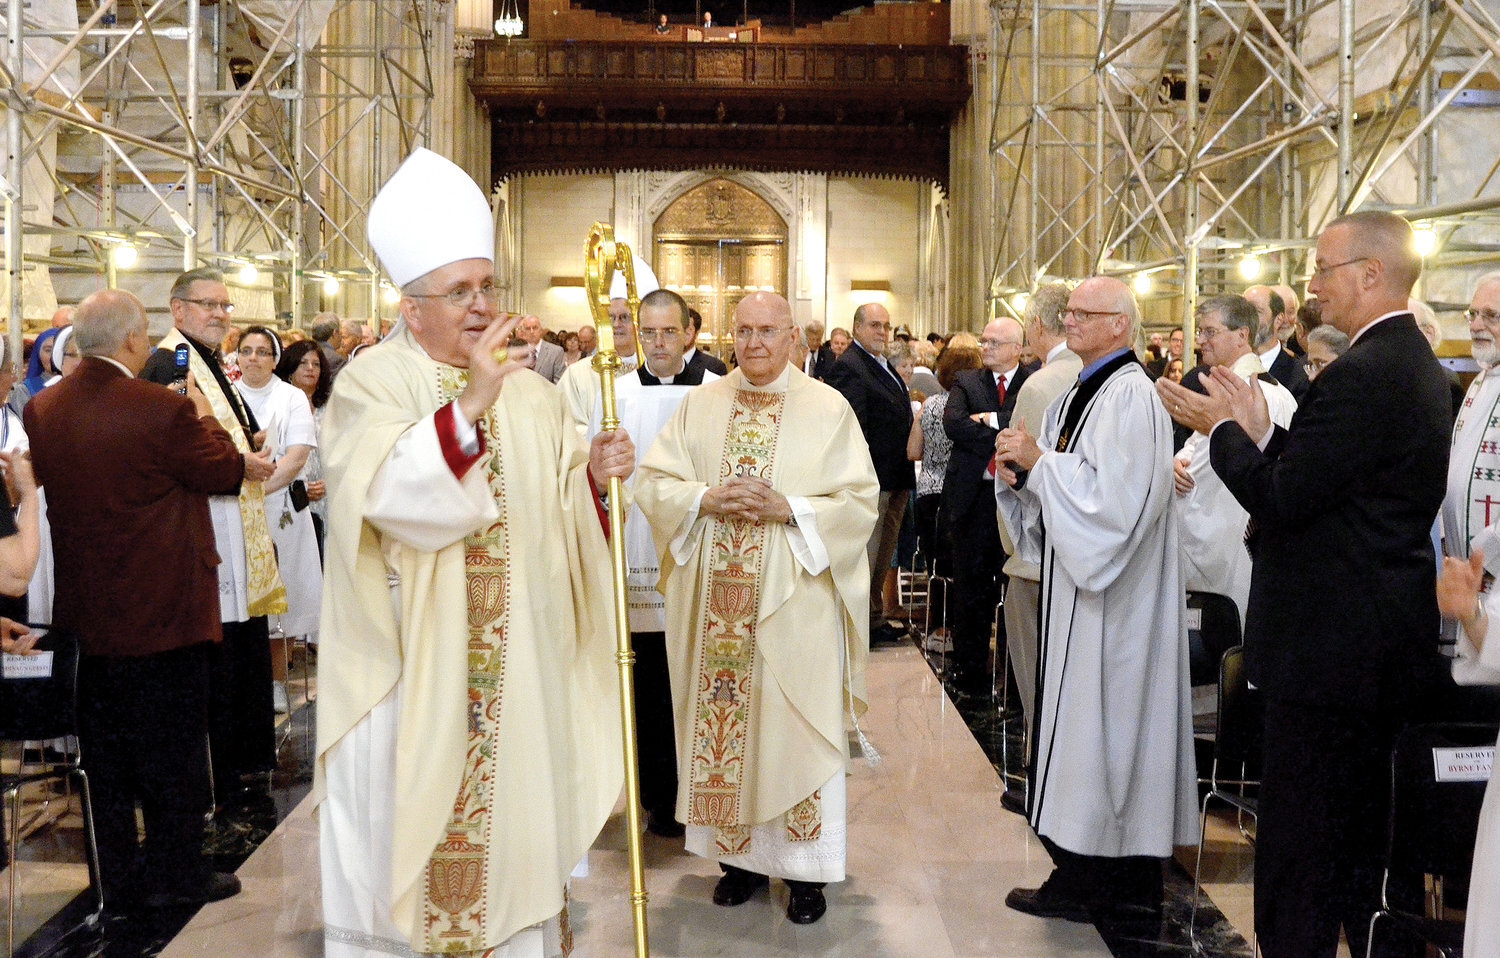 Congratulations Bishop O'Hara on your retirement!